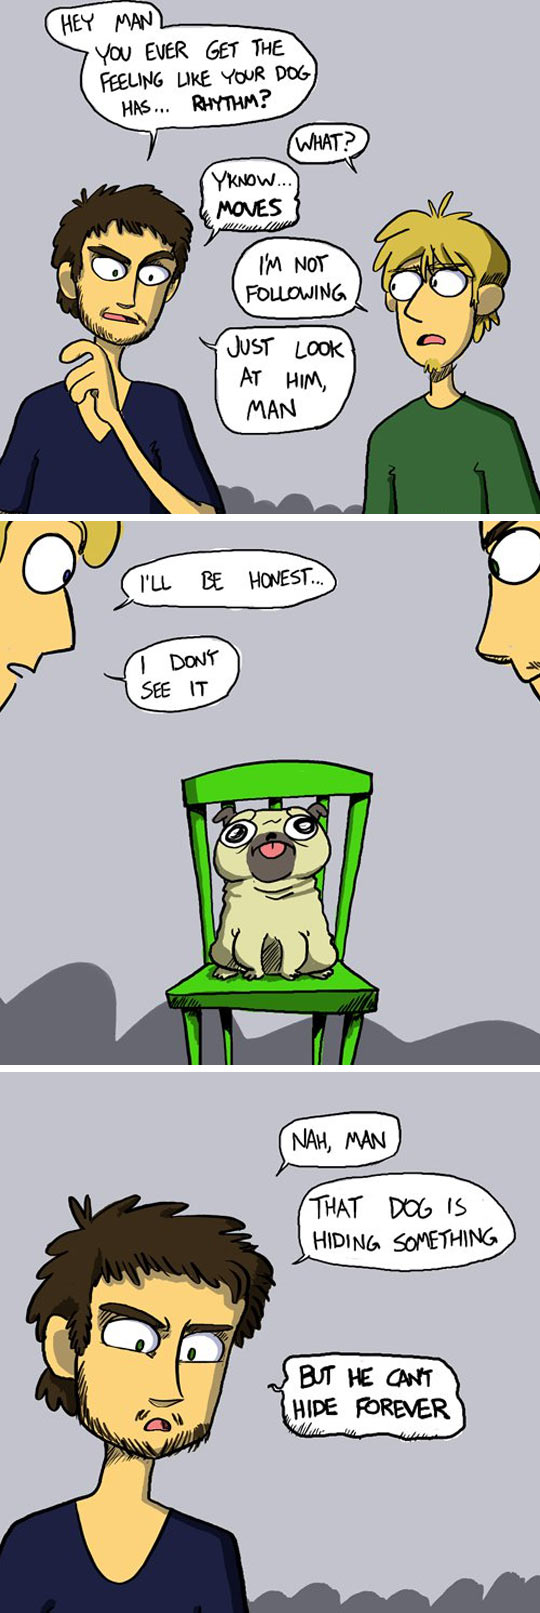 funny-picture-friends-talking-pug-chair